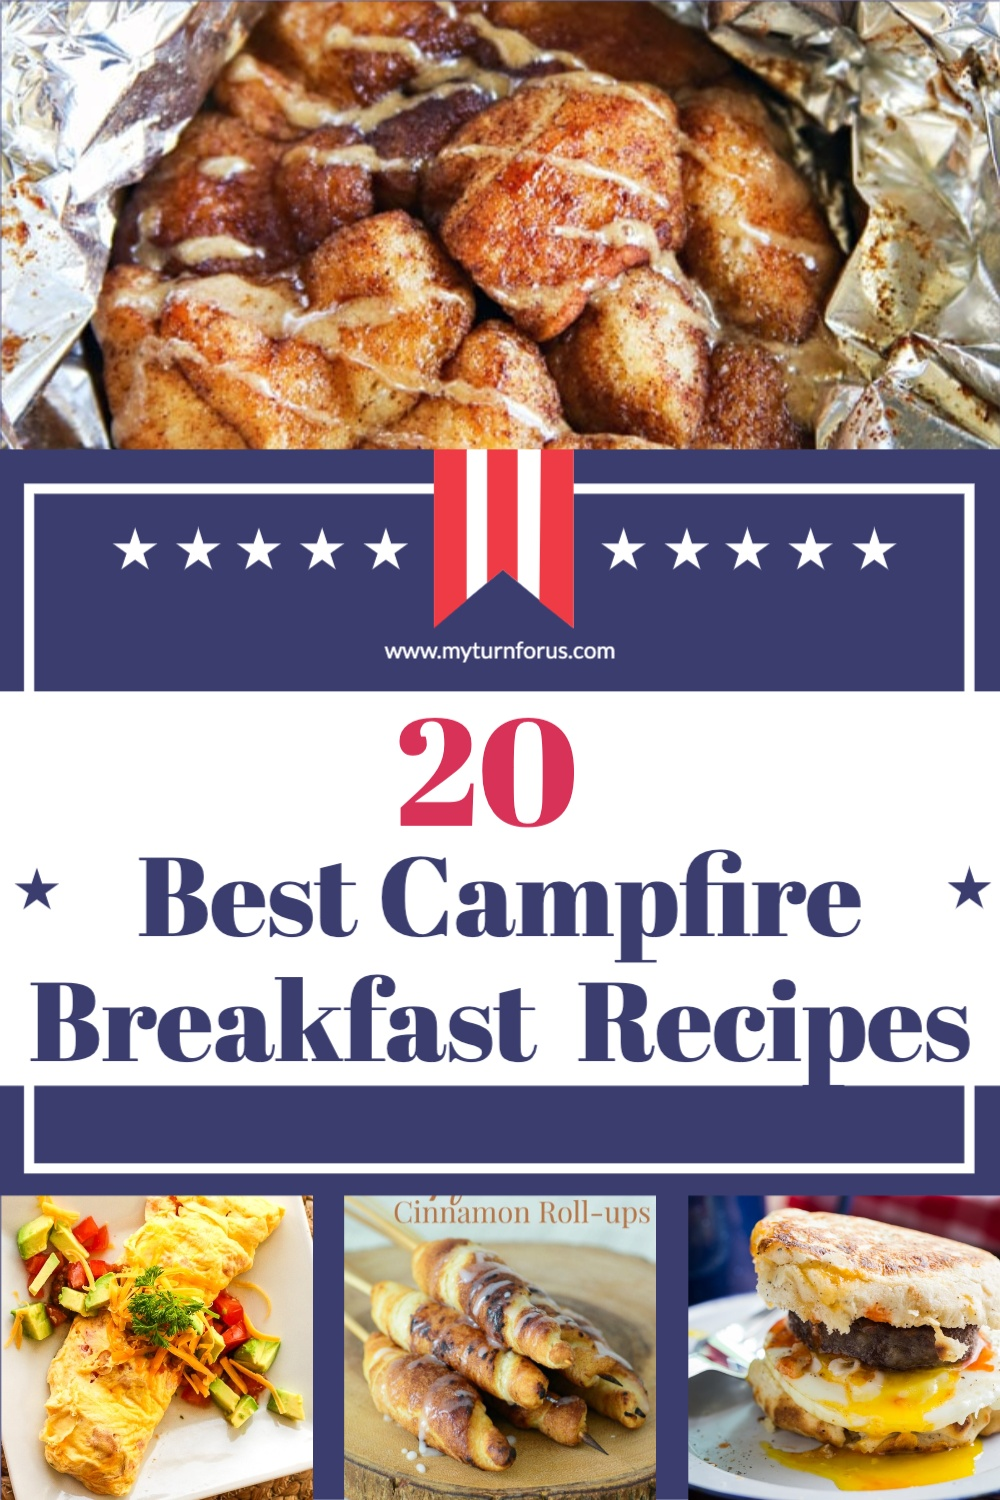 We have 20 of the Best Camping Breakfast ideas and campfire breakfasts for your convenience. We are sure you will find a campfire breakfast you will love.